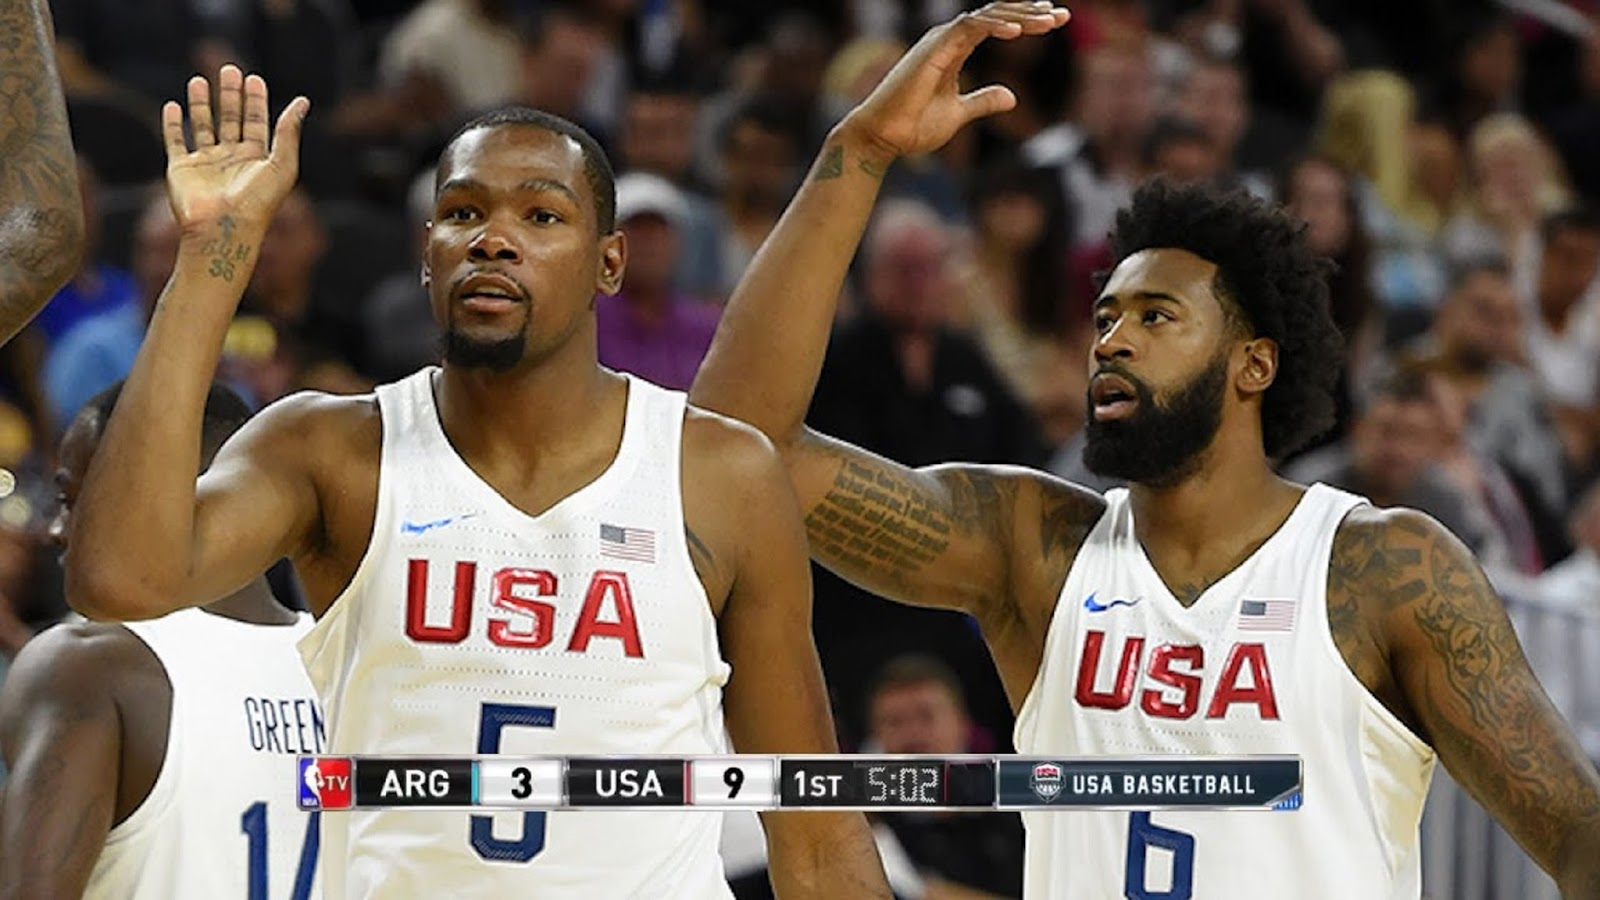 OLYMPICS TEAM USA BASKETBALL 3